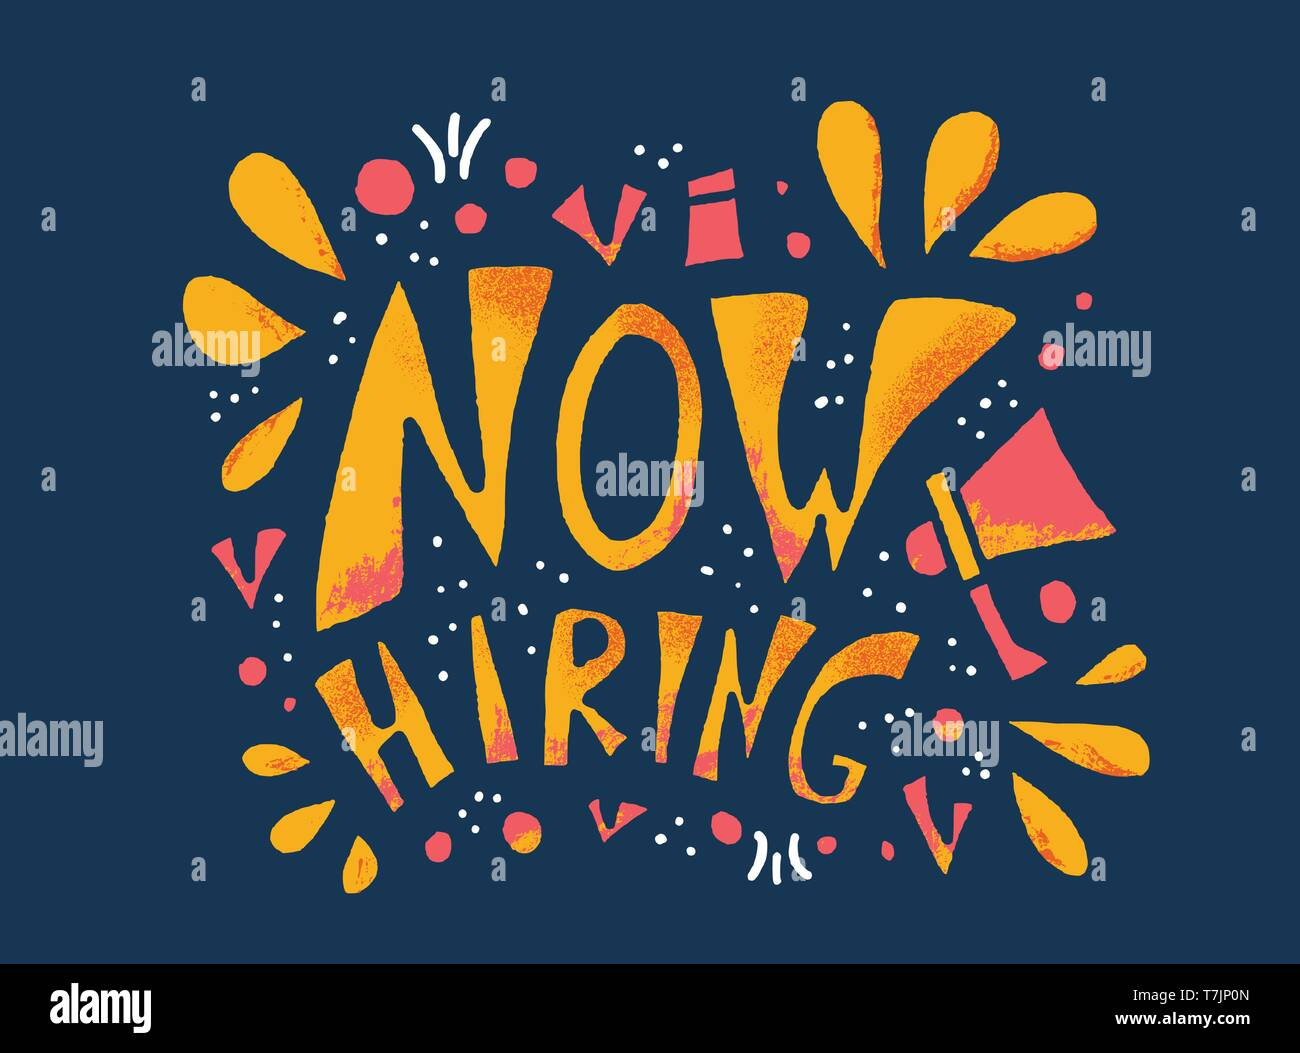 https www alamy com now hiring poster message for hr vacancy announcement template for web social media post vector color illustration image245660149 html